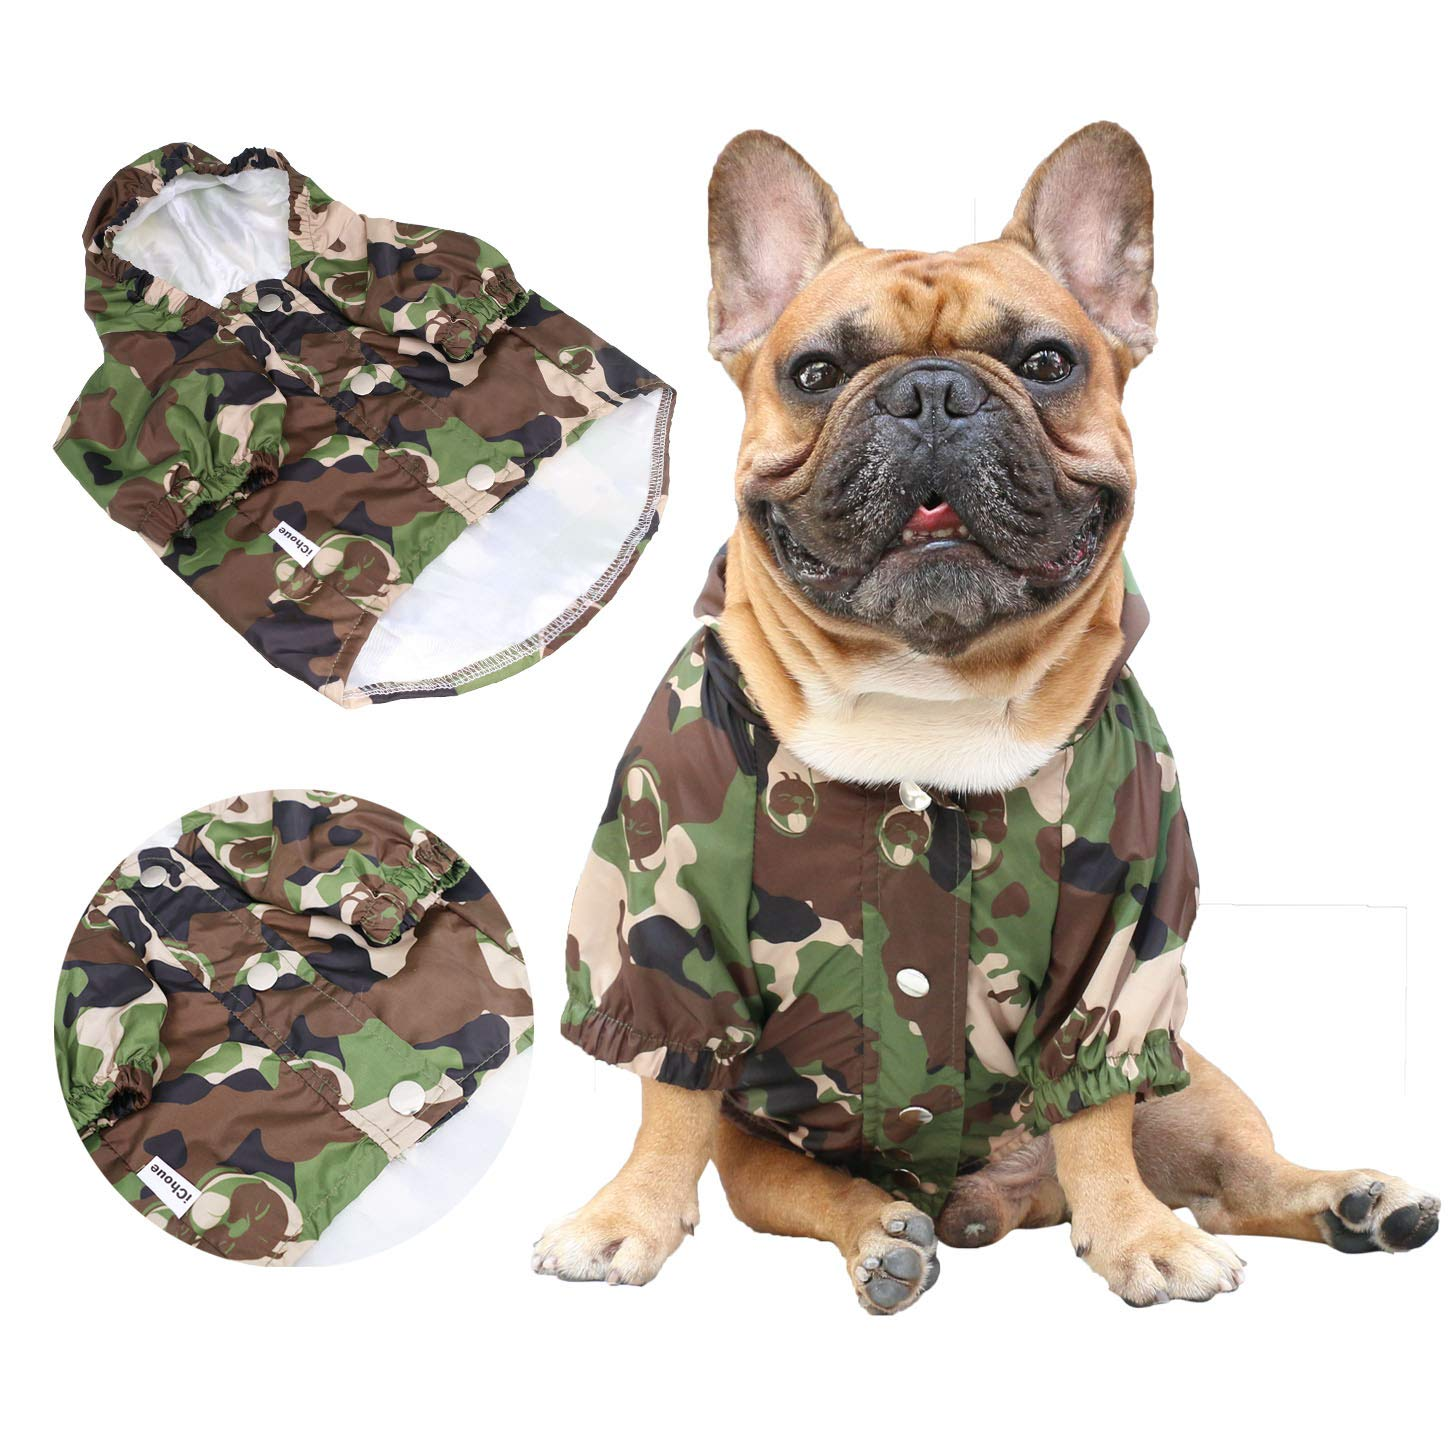 iChoue Pet Dog Hoodie Clothes Windproof Waterproof Raincoat for French bullodg Outwear Pug Corgi Outdoor Water Resistant Coat with Reflective Strips - Camouflage/Size S by iChoue